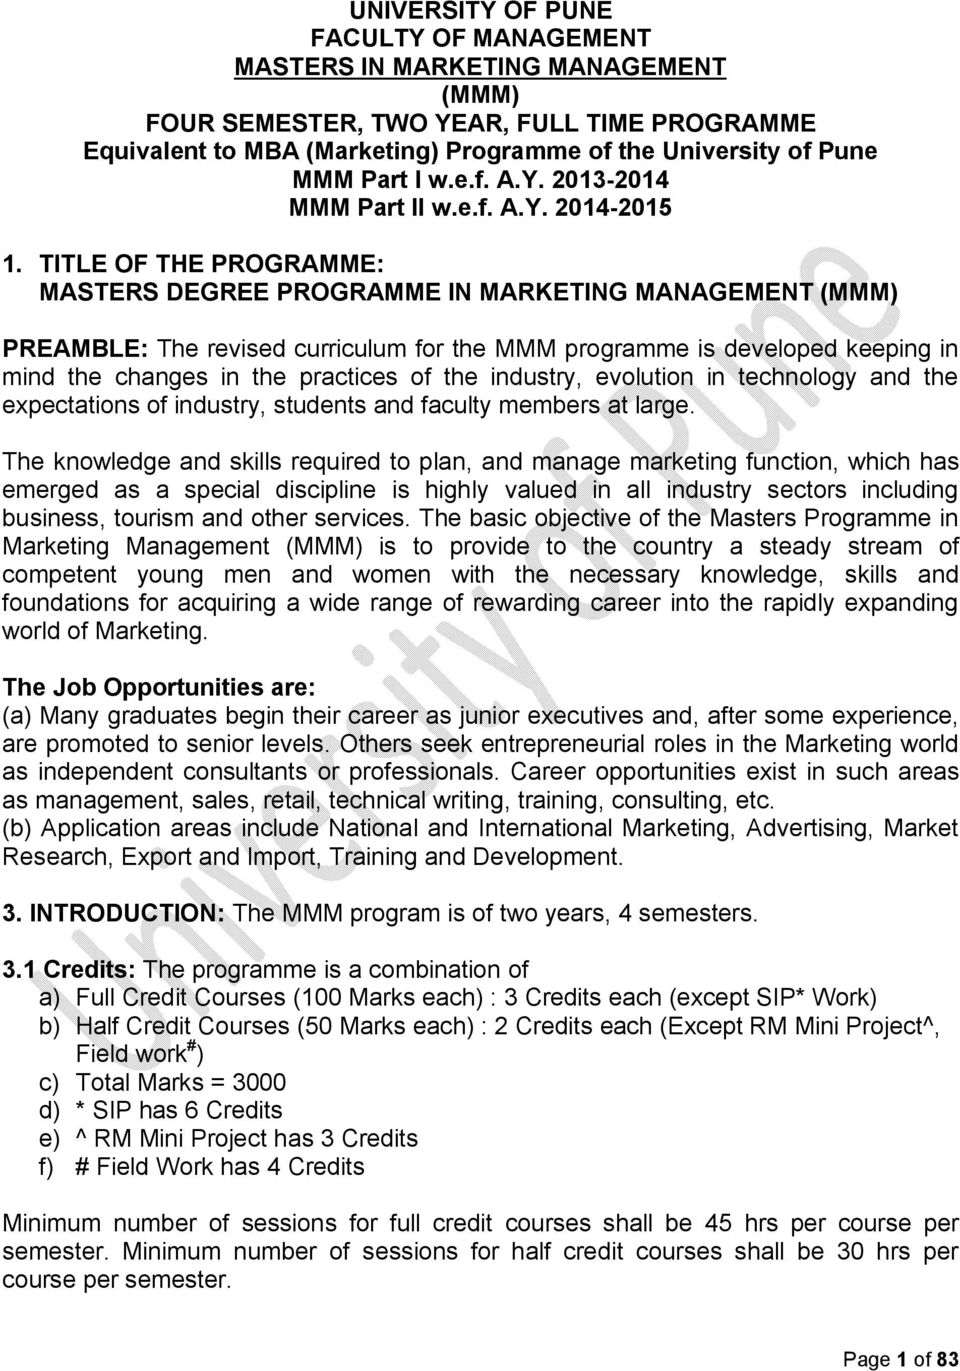 TITLE OF THE PROGRAMME: MASTERS DEGREE PROGRAMME IN MARKETING MANAGEMENT (MMM) PREAMBLE: The revised curriculum for the MMM programme is developed keeping in mind the changes in the practices of the